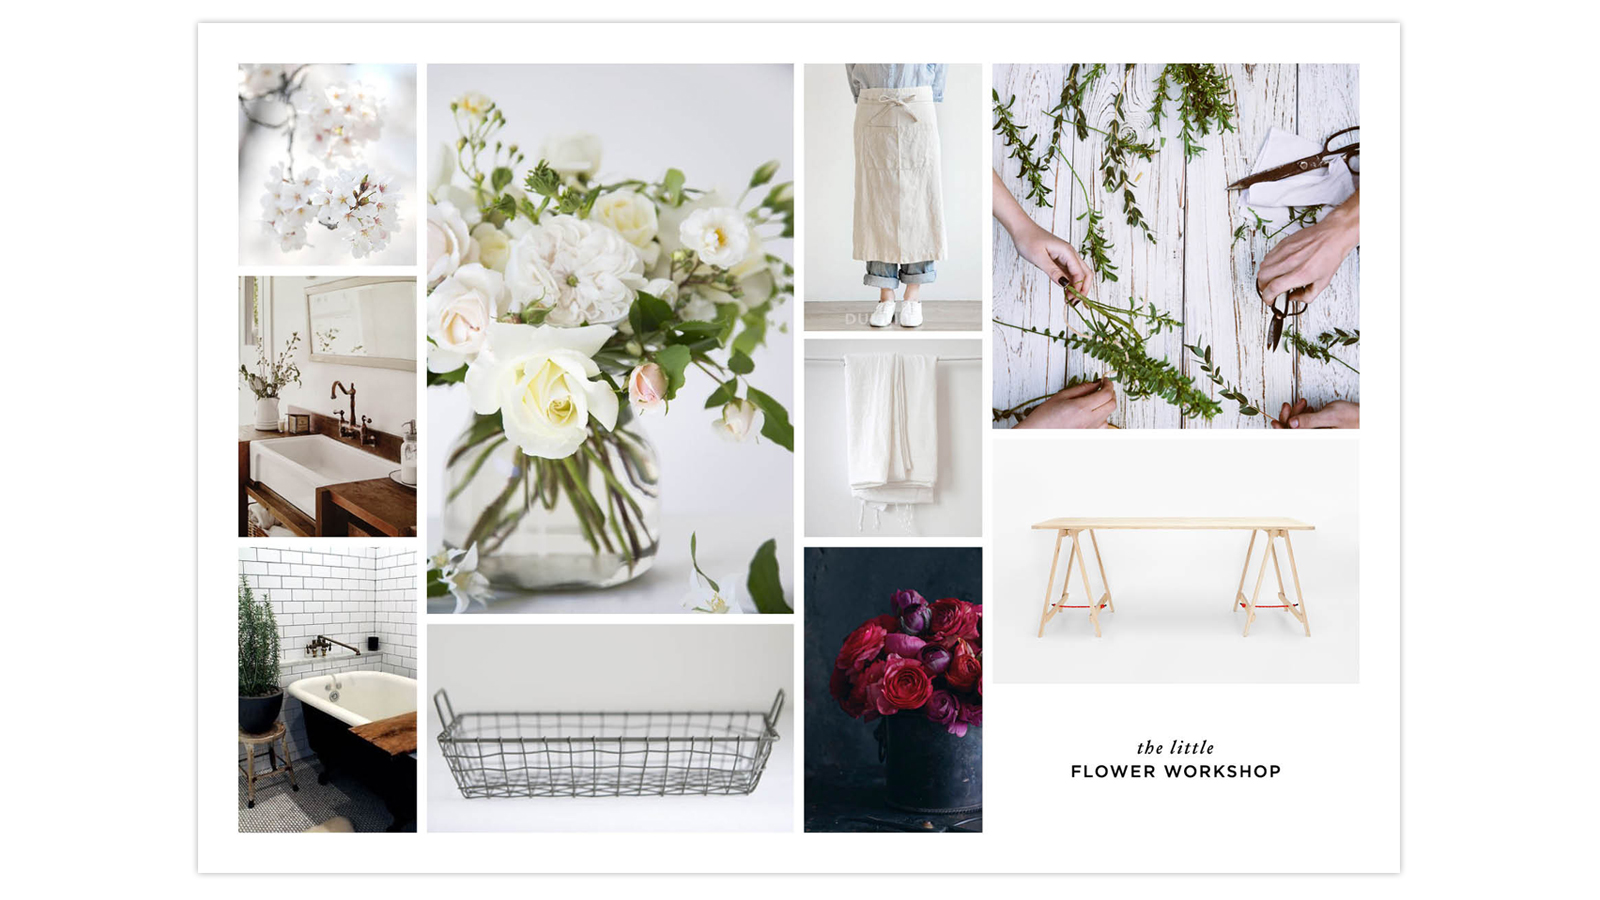 The-Little-Flower-Workshop-Designed-By-ALSO-Agency